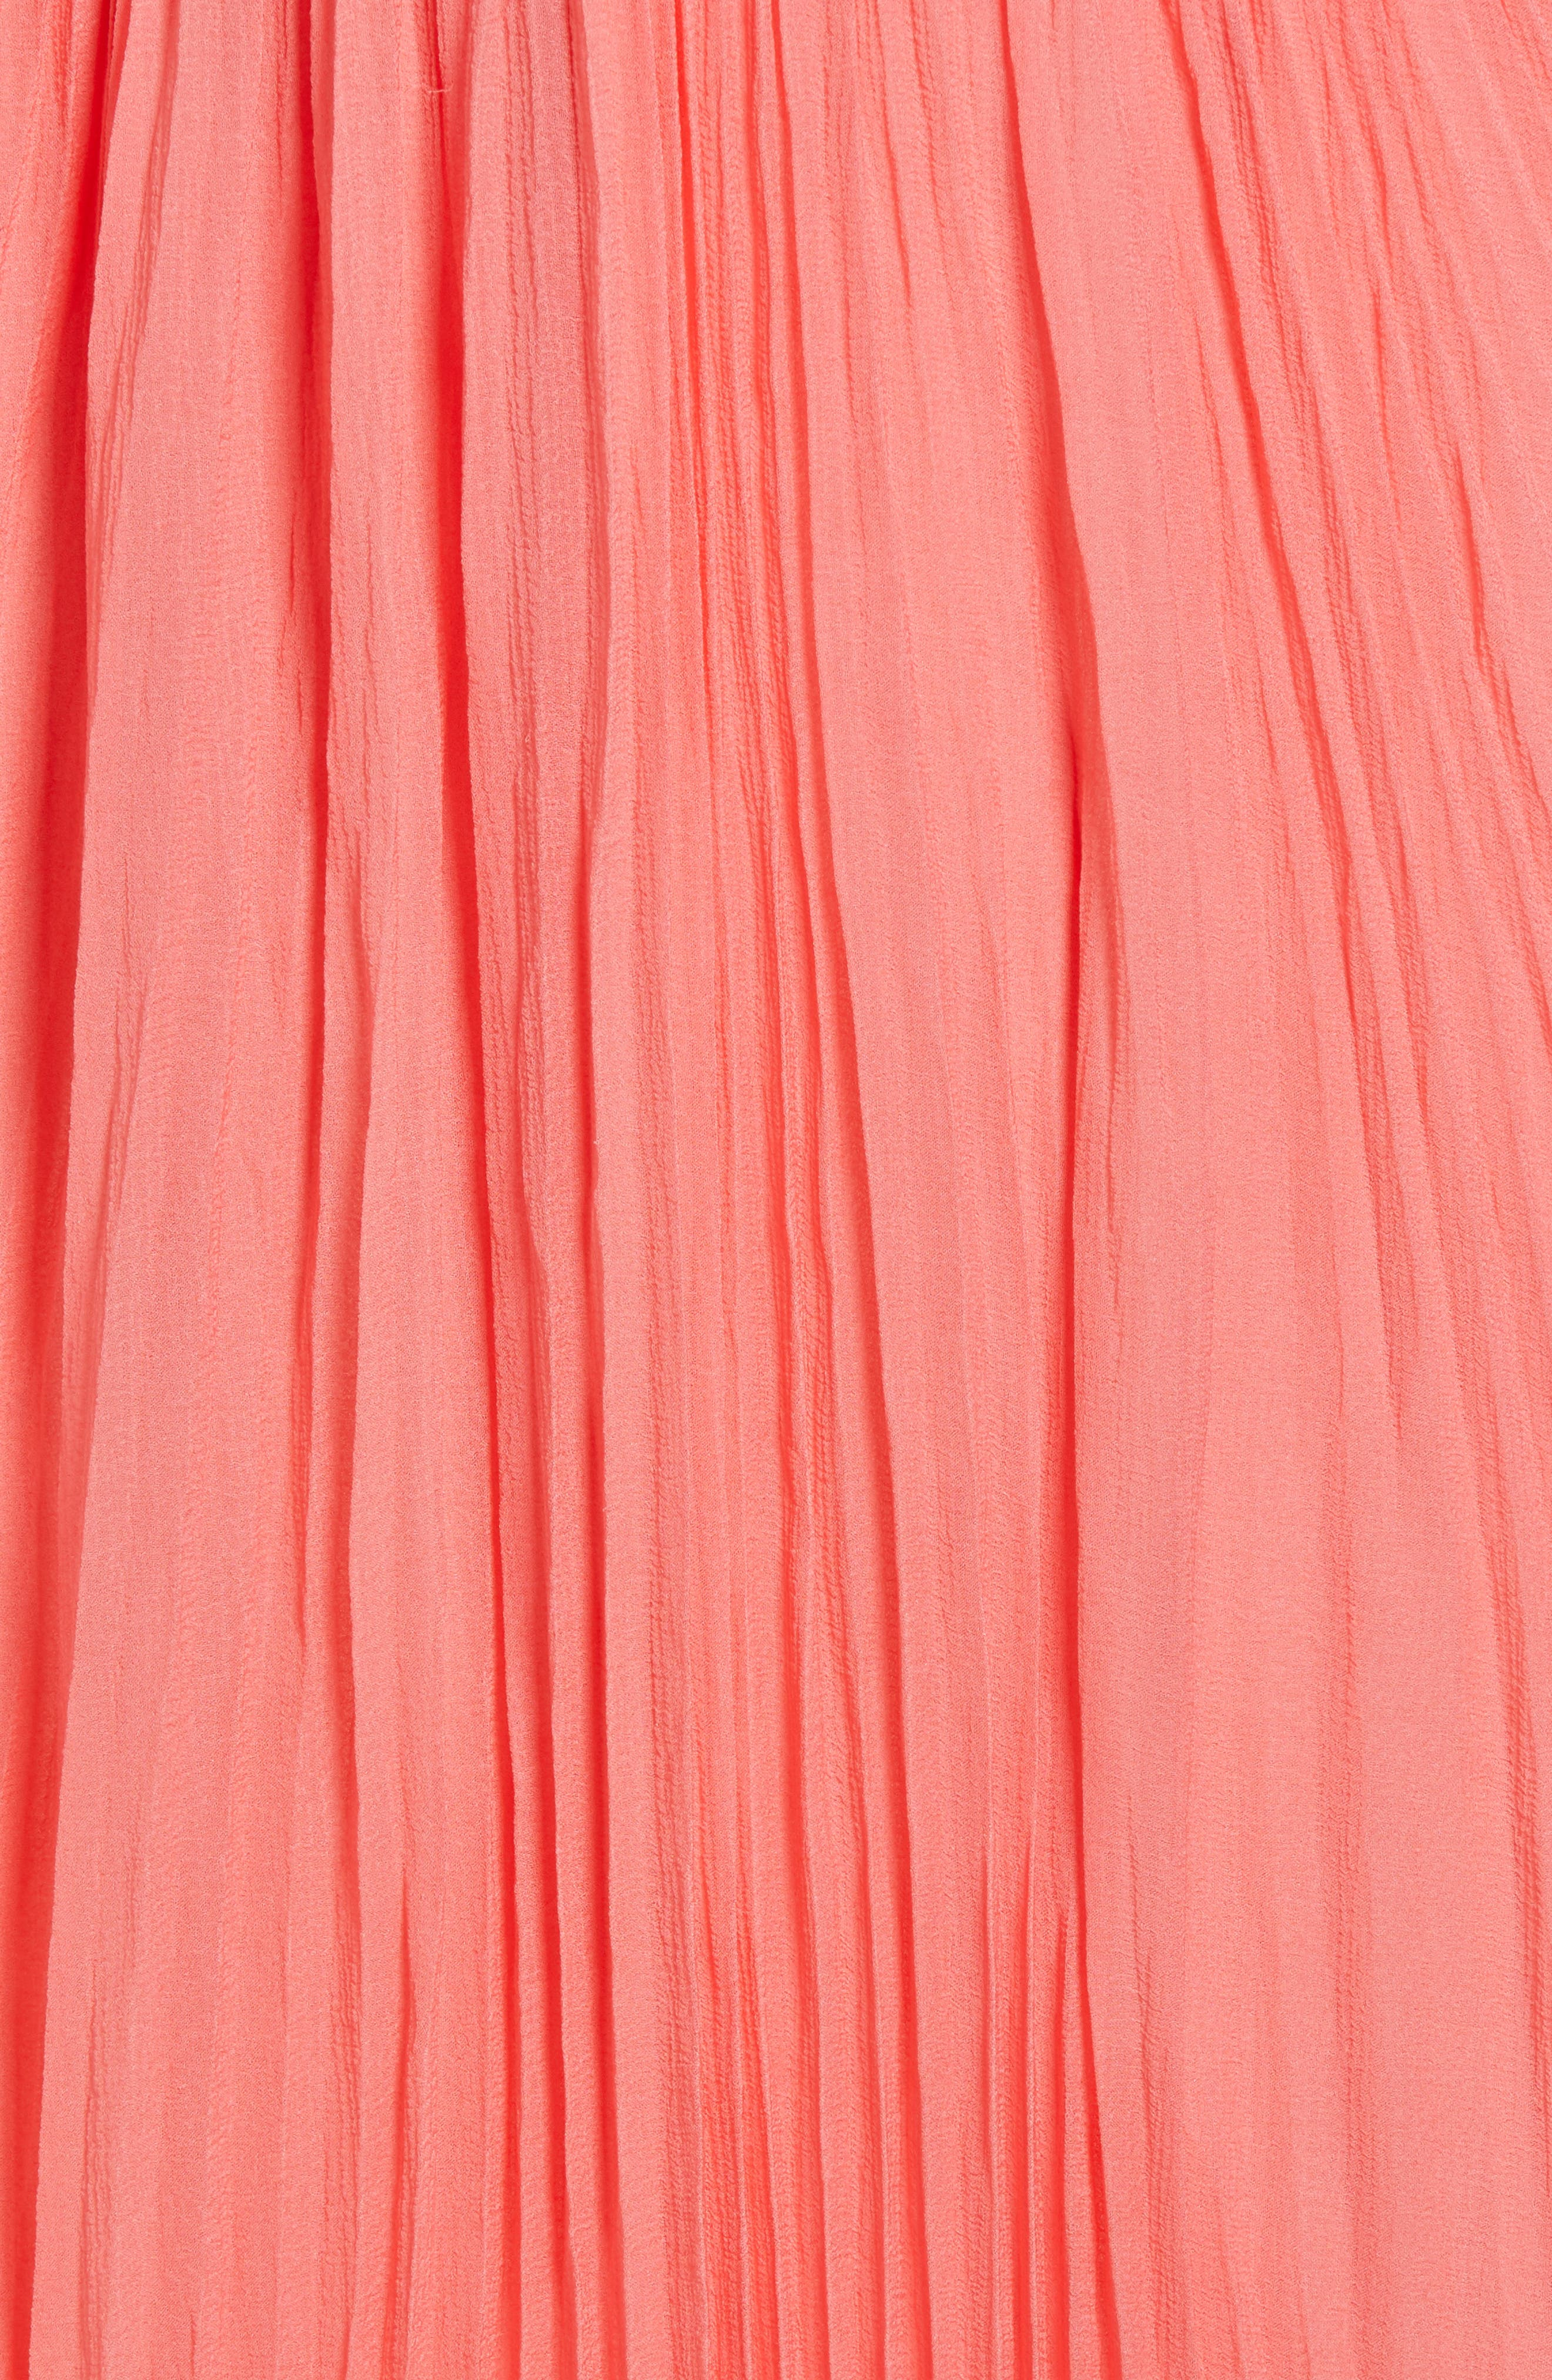 Pleated Crinkle Silk Maxi Dress,                             Alternate thumbnail 5, color,                             Coral Sugar